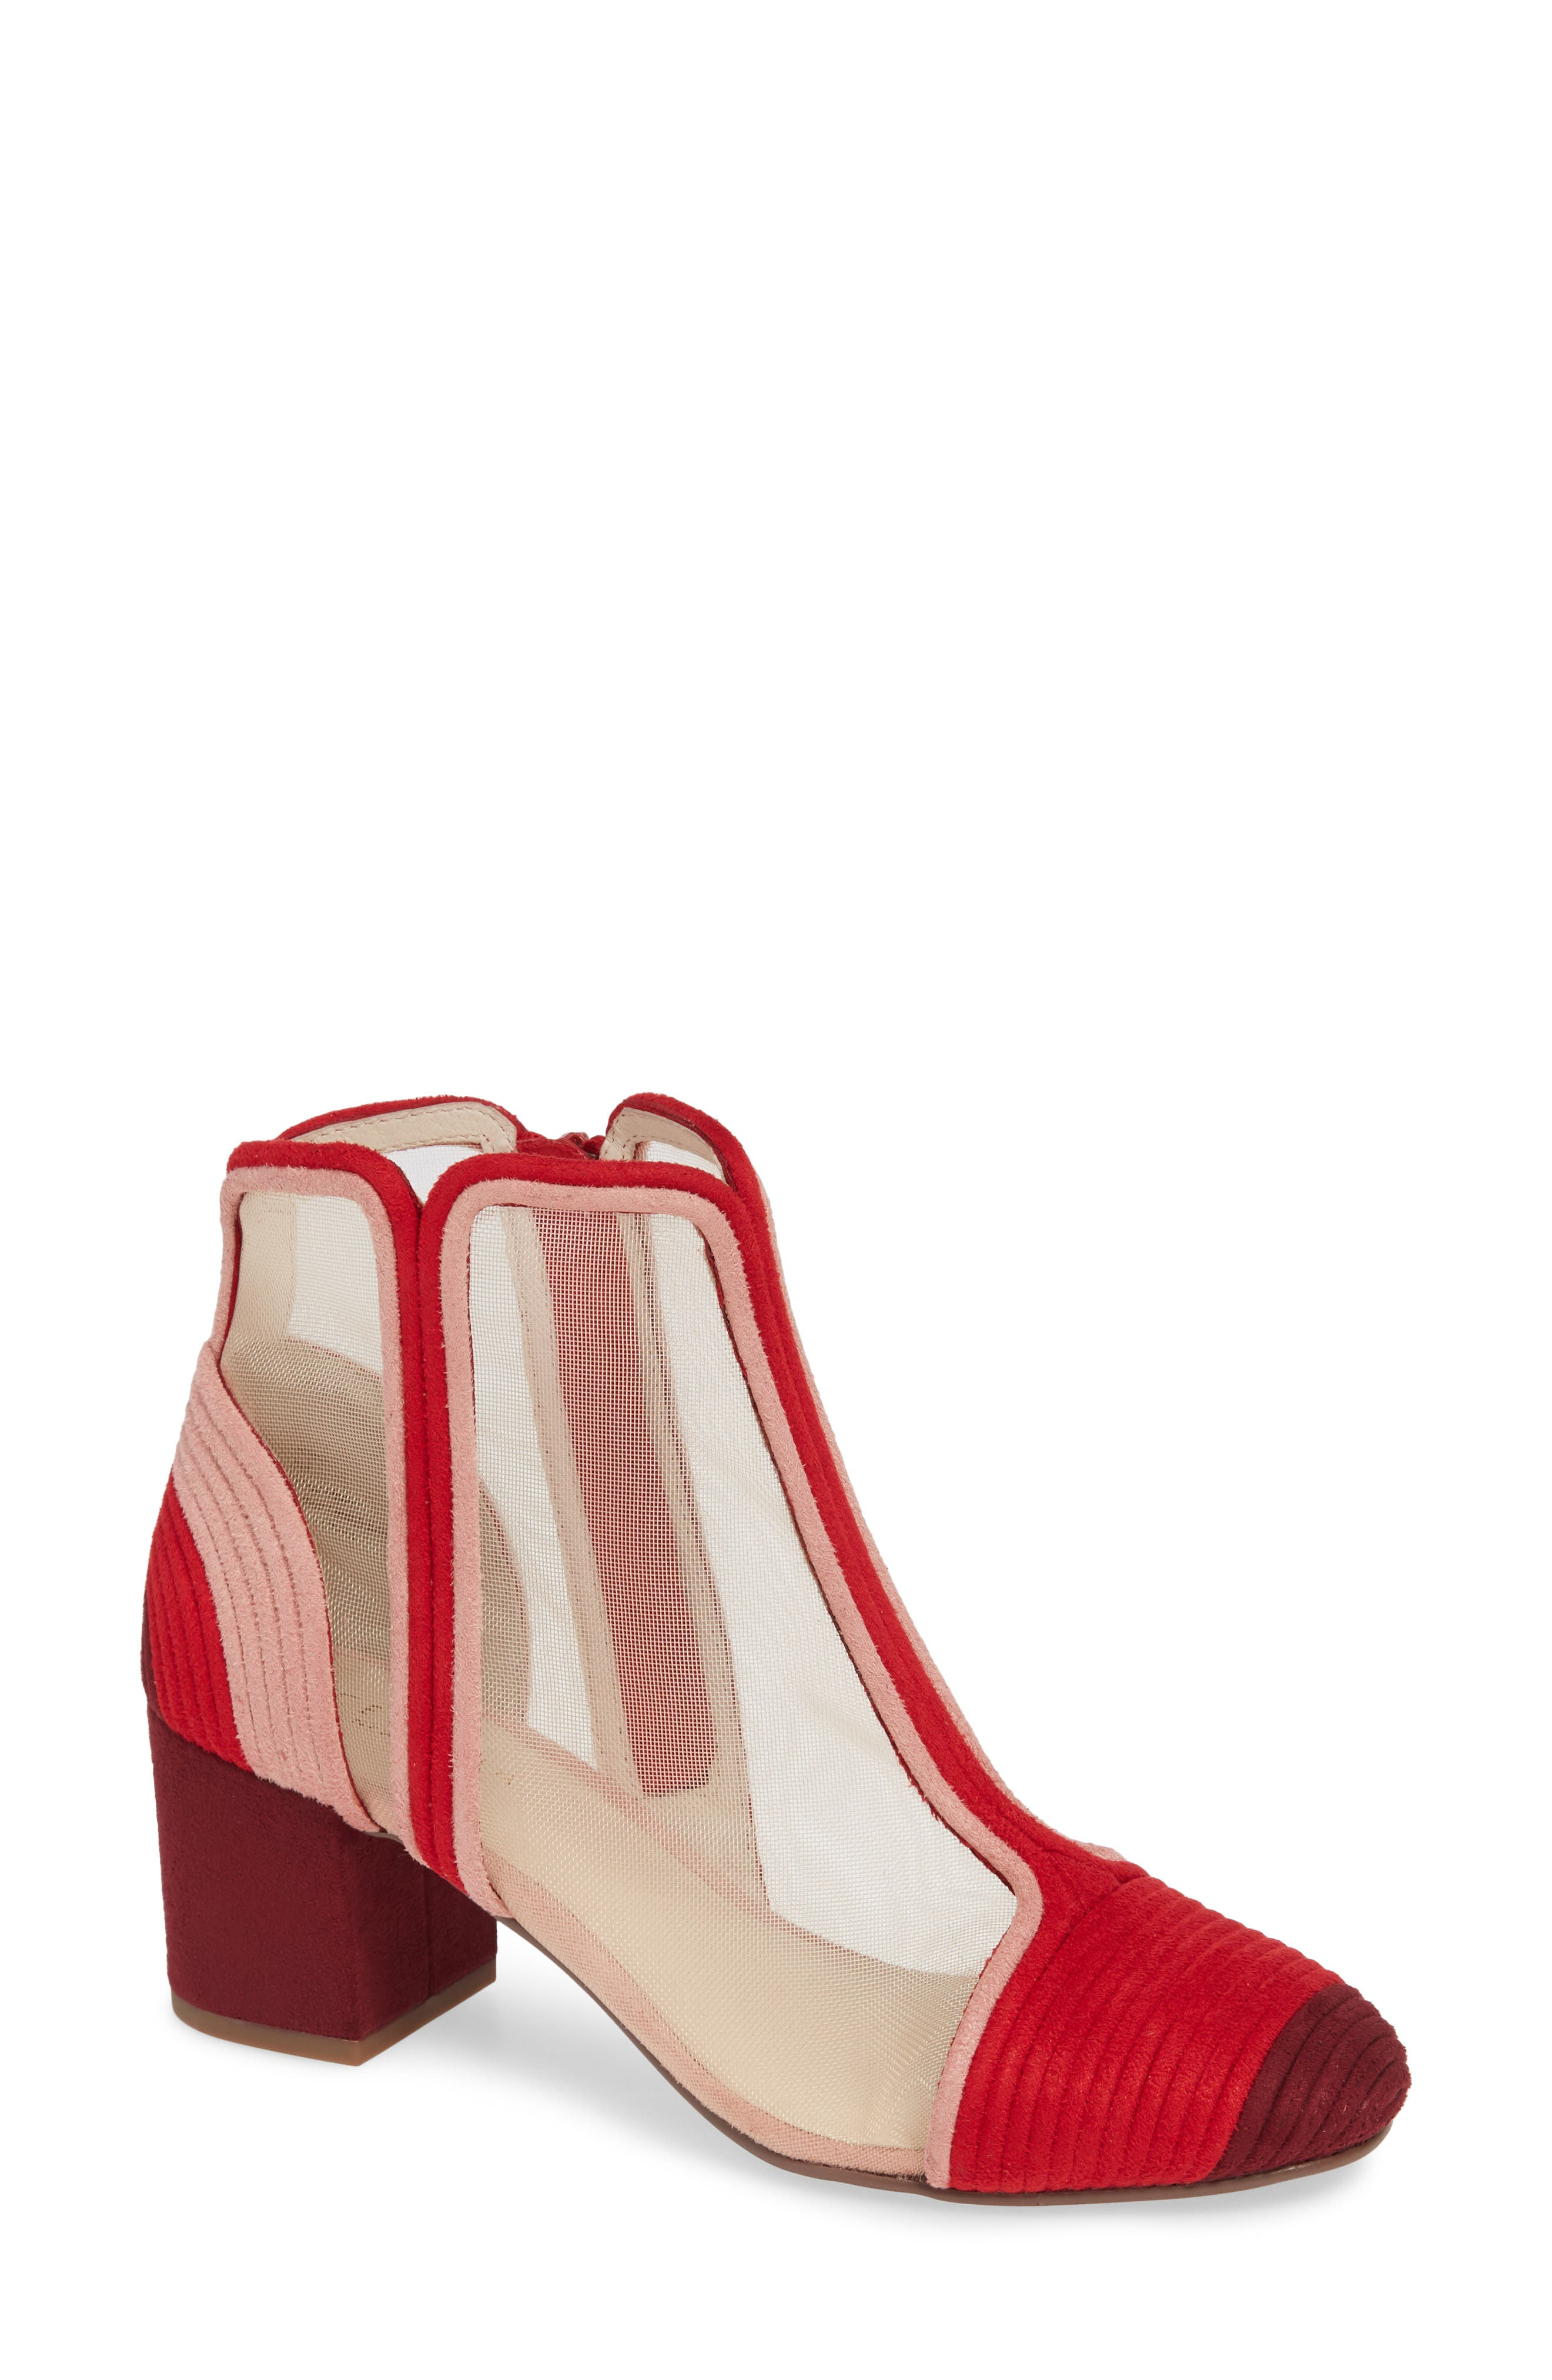 CECELIA NEW YORK,                             Neely Bootie,                             Main thumbnail 1, color,                             PINOT SUEDE